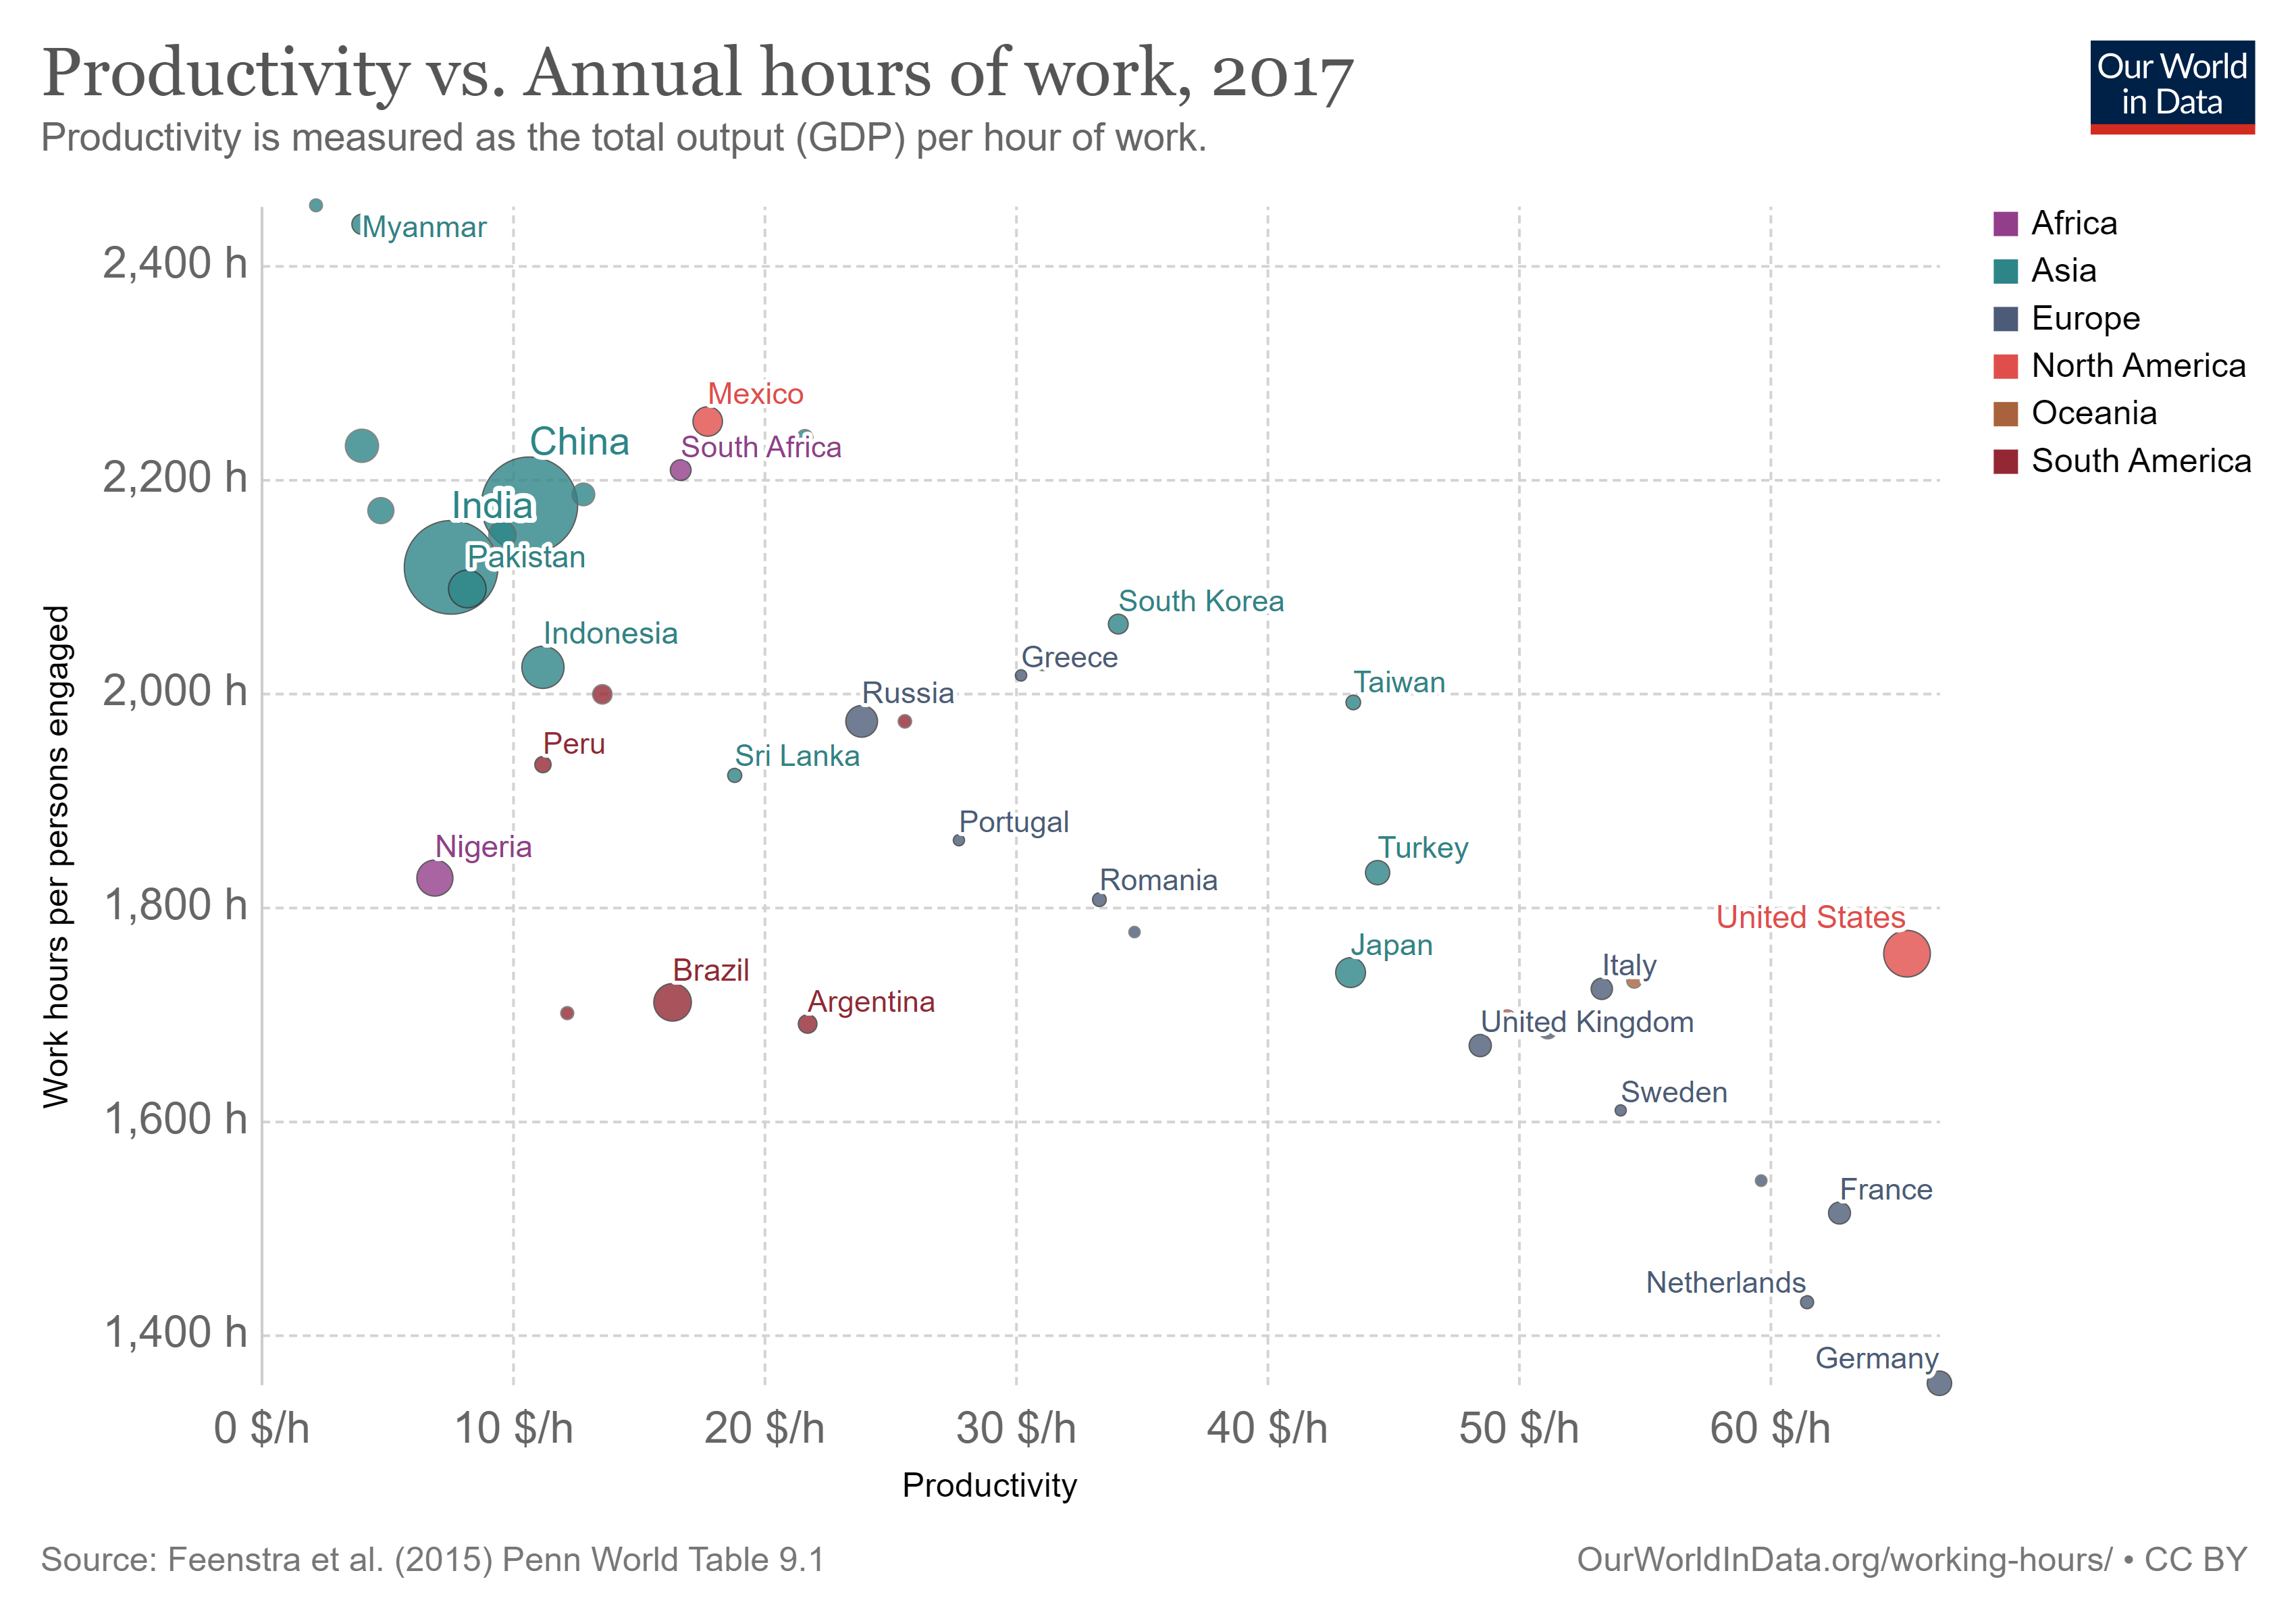 Productivity vs. annual hours of work (Our World in Data)